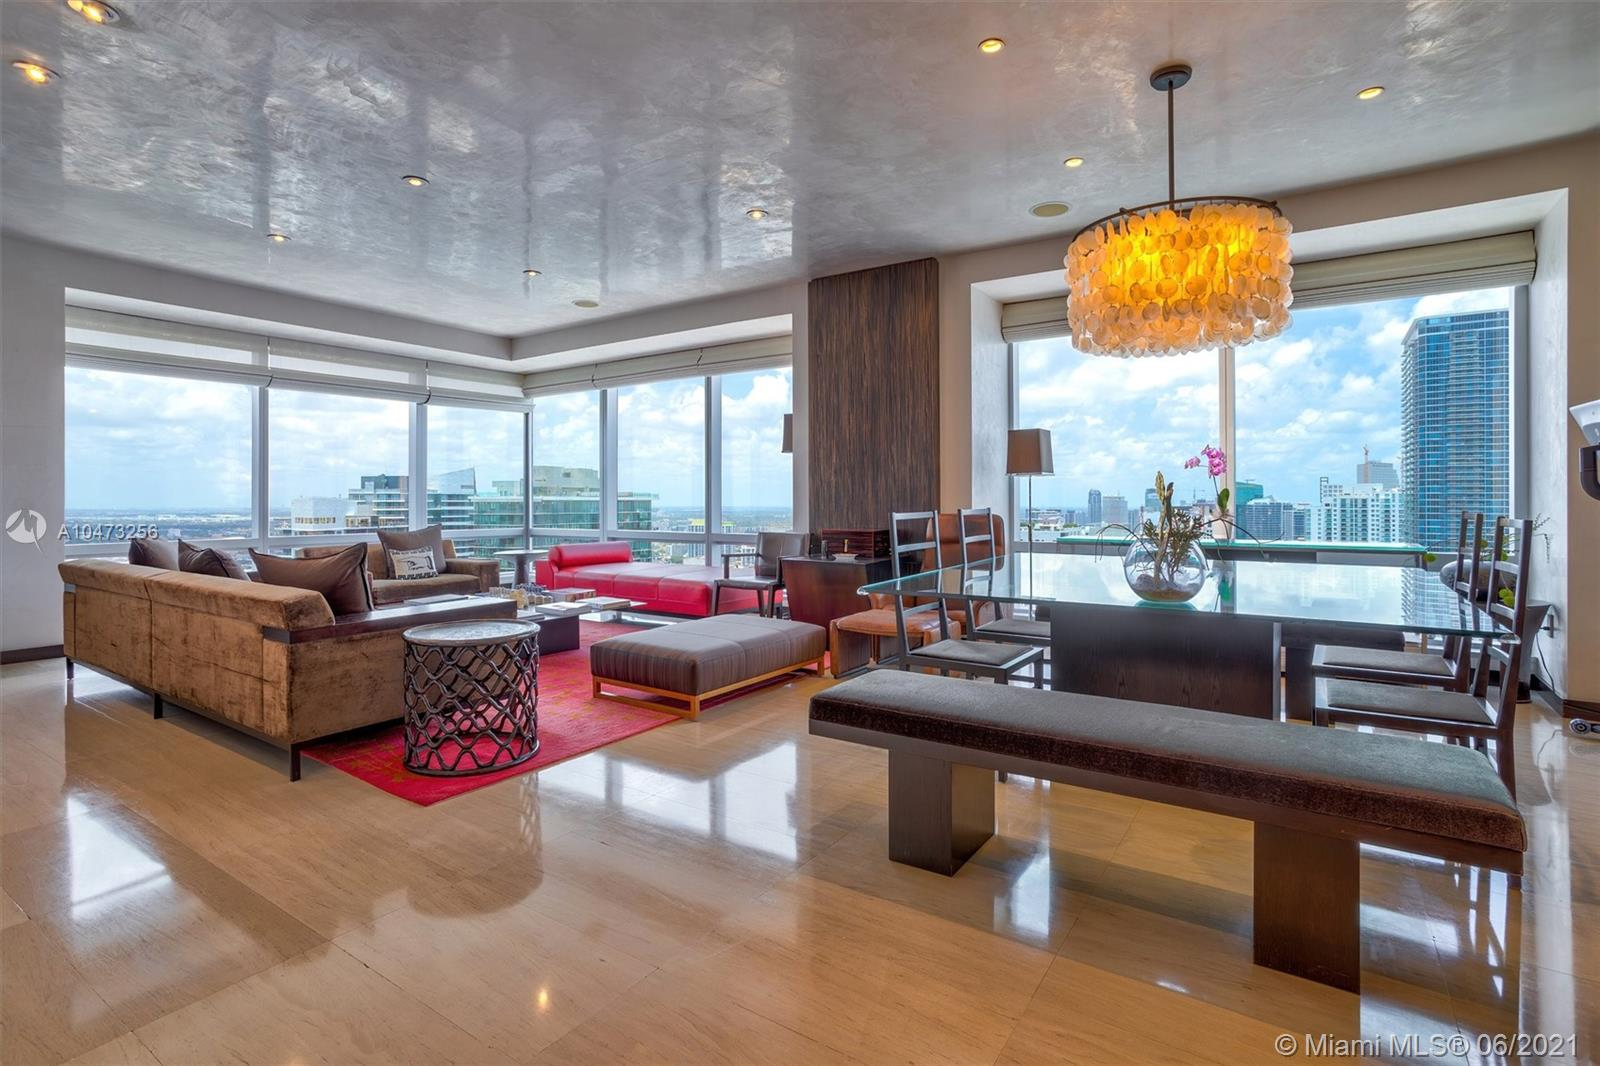 Motivated Seller, make an offer!!! Four Seasons Residences. Most spectacular and up-scale building in Brickell. Located walking distance to fine dinning, shops and night life. This beautiful unit offers Top of the Line finishes, amazing 260 degrees views and outstanding amenities, 3 pools W/Cabanas, room service, 24 hr Concierge, Security, Valet, Restaurants, 4 free memberships to Equinox Fitness Club.